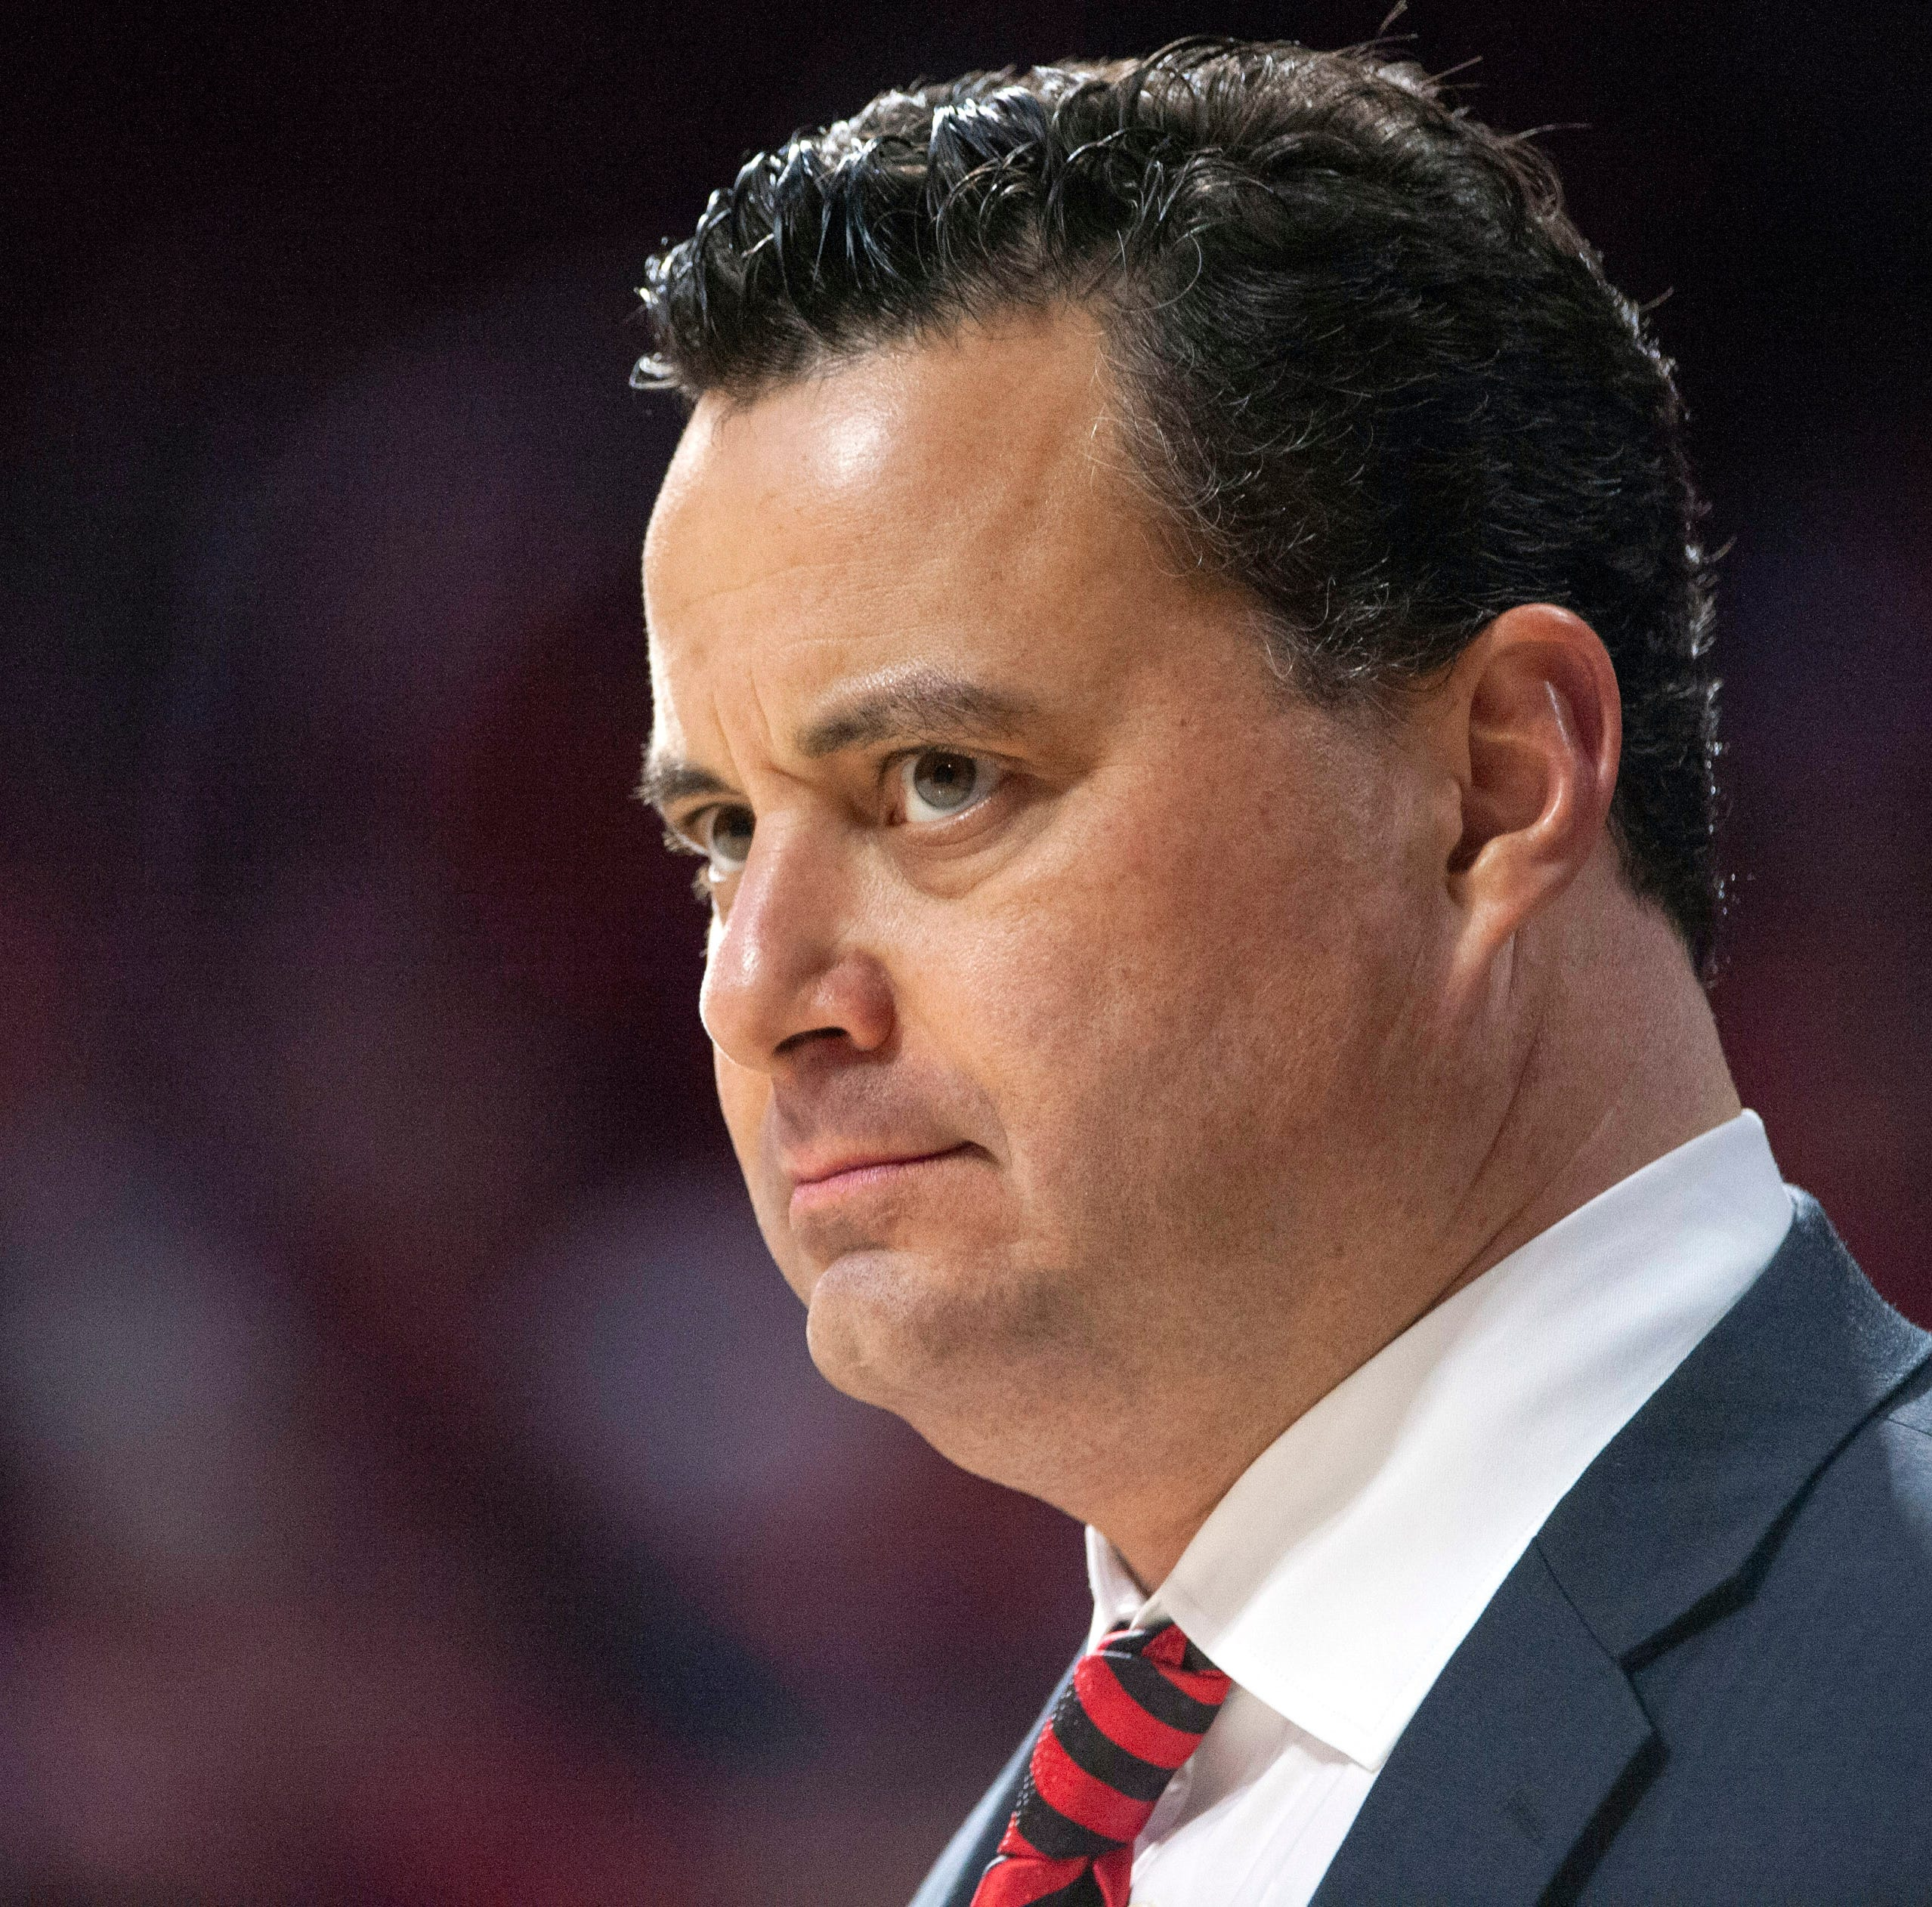 Arizona Wildcats basketball: Attention turning to potentially tricky NCAA investigation